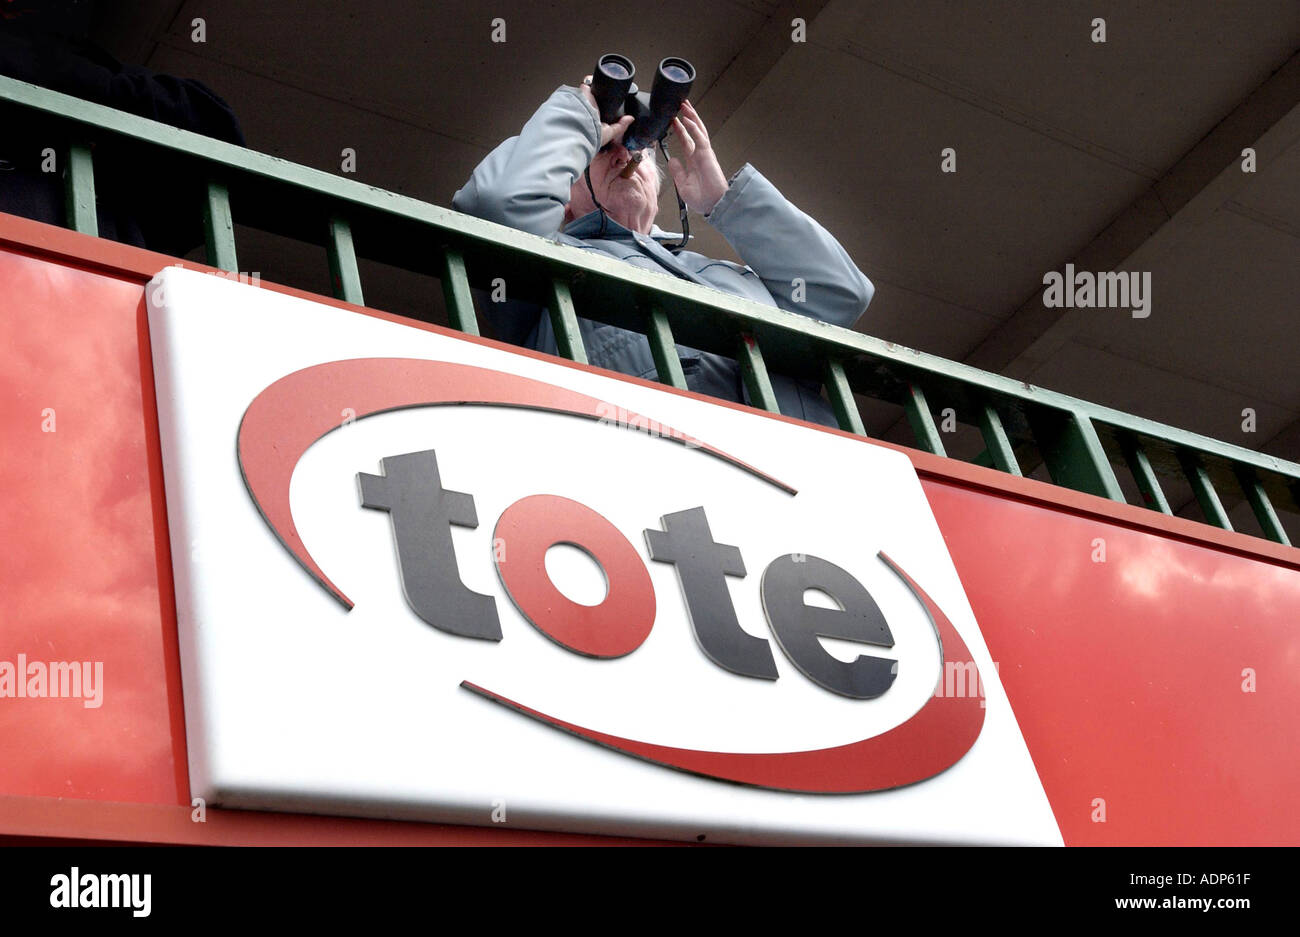 A racegoer studies form with binoculars over a Tote logo on a balcony at Lingfield Park racecourse,  Surrey. - Stock Image